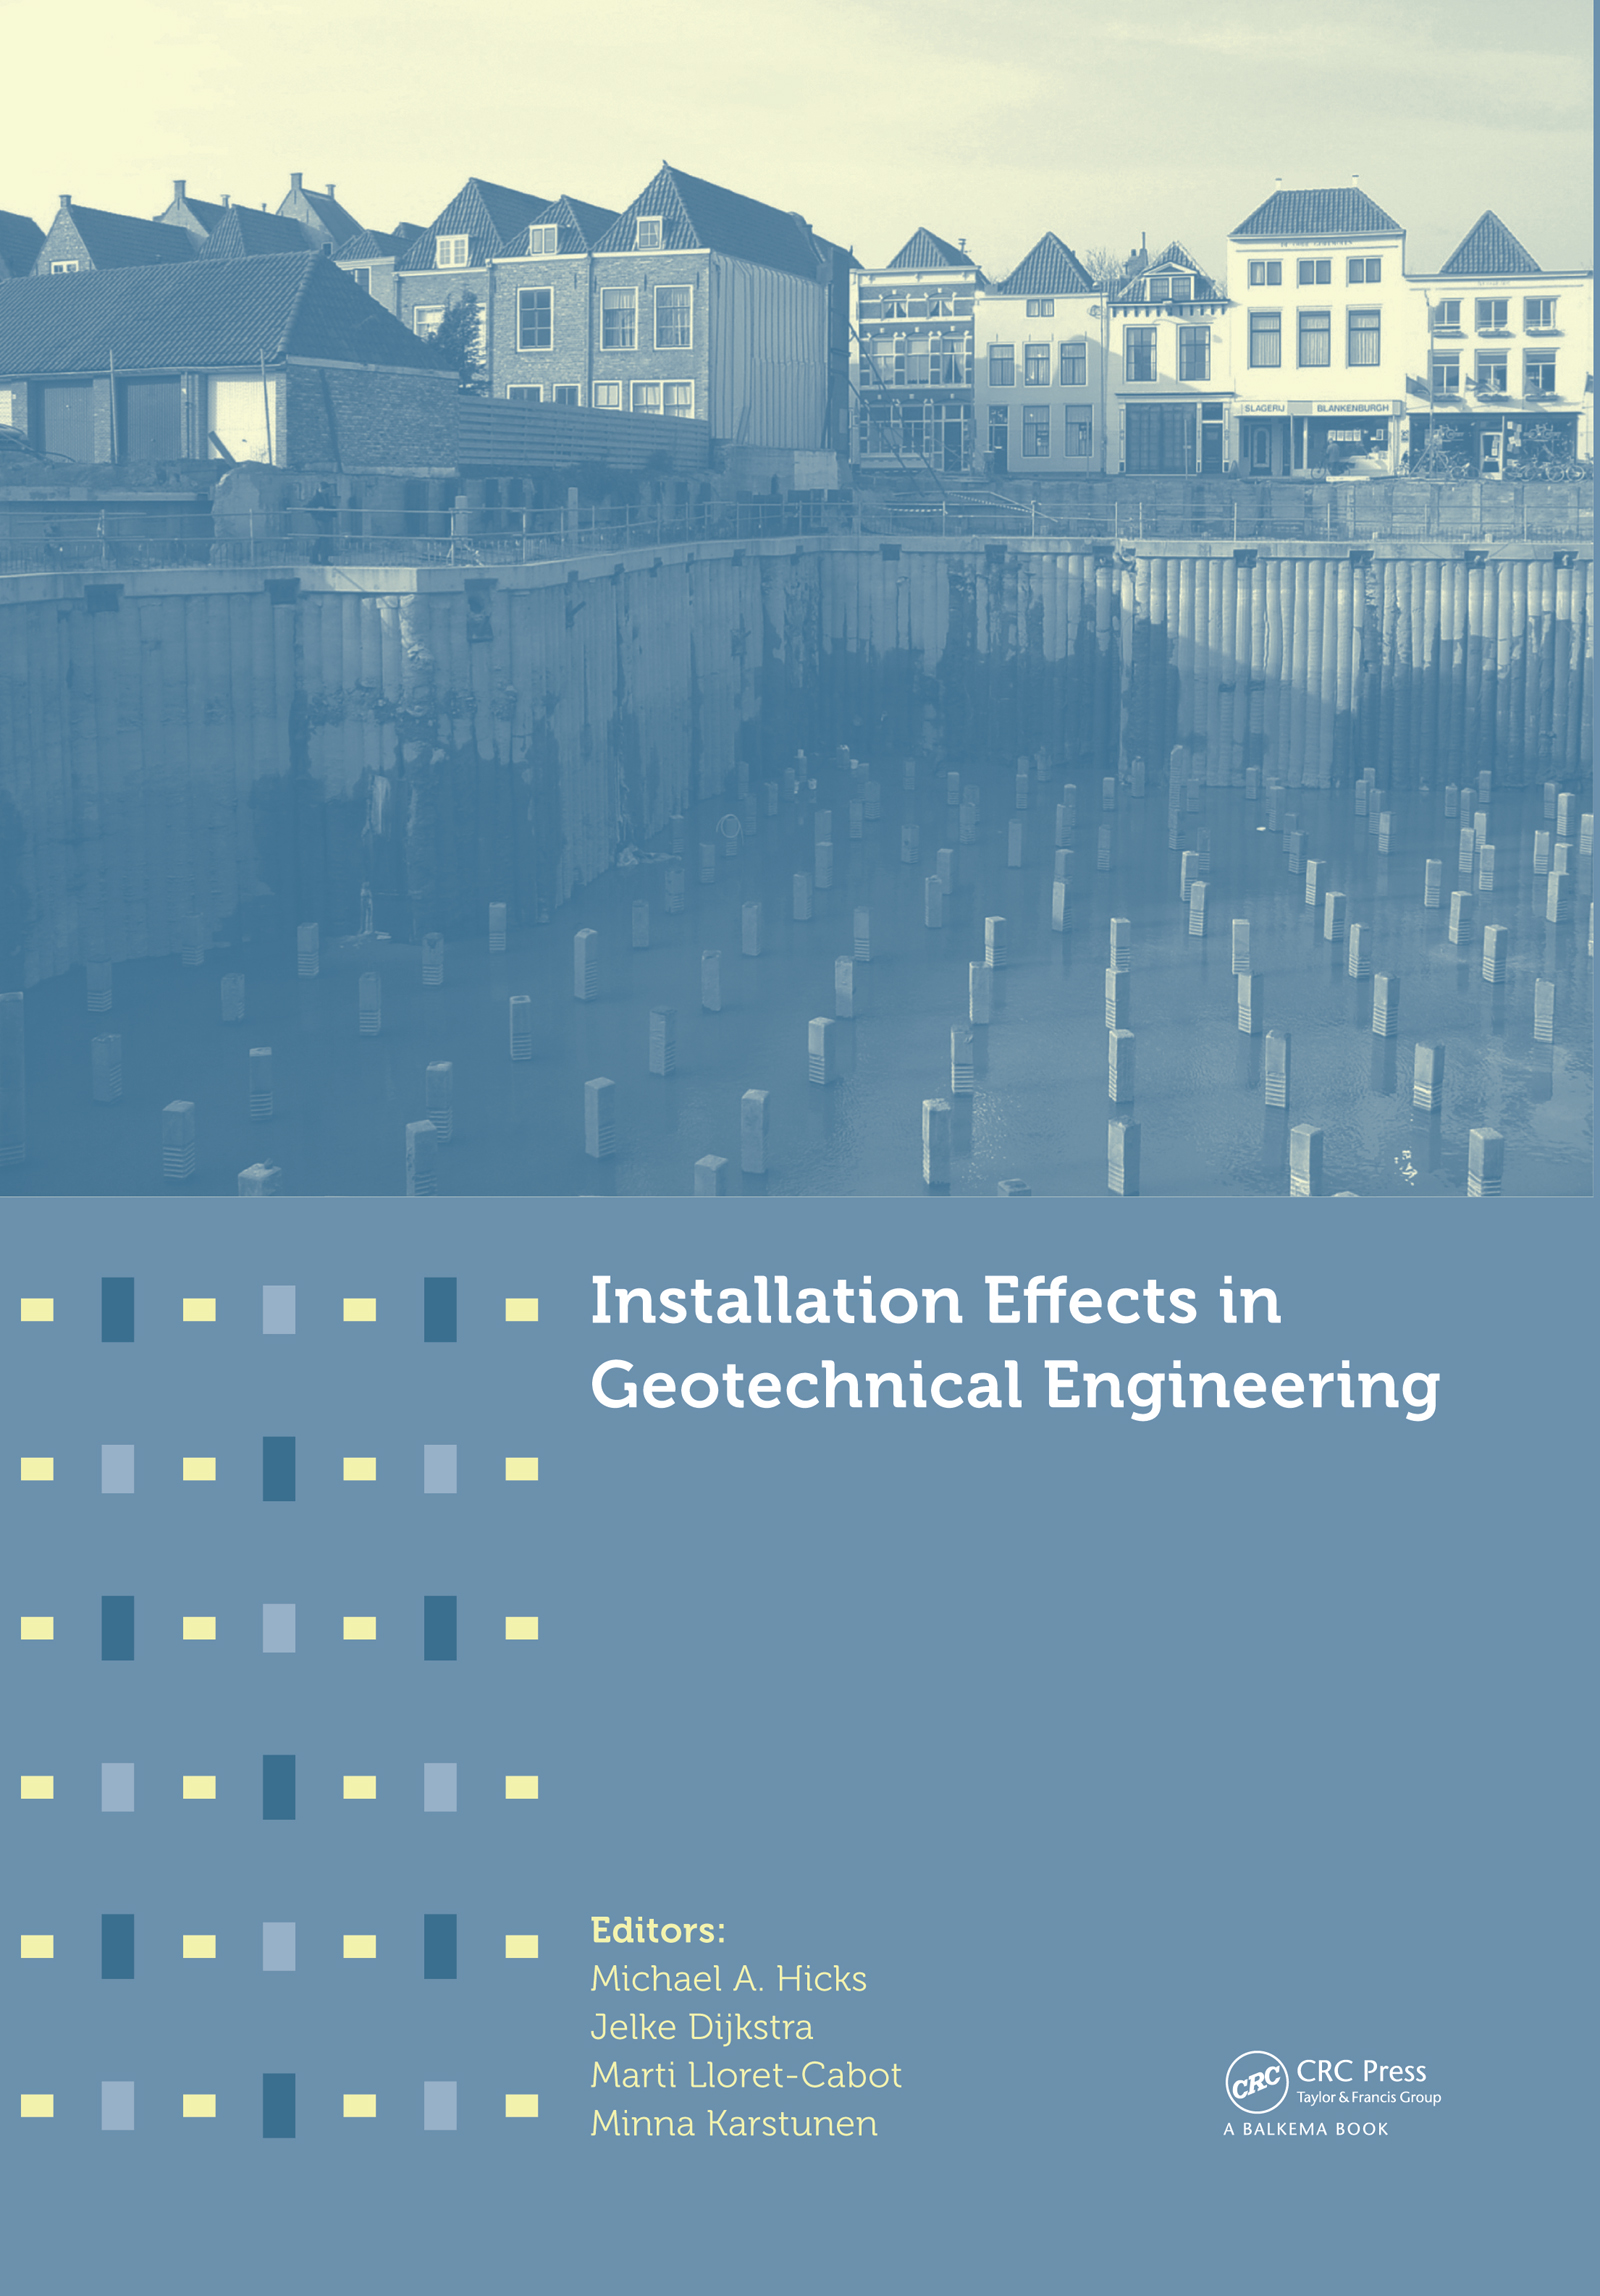 Installation Effects in Geotechnical Engineering (Pack - Book and CD) book cover